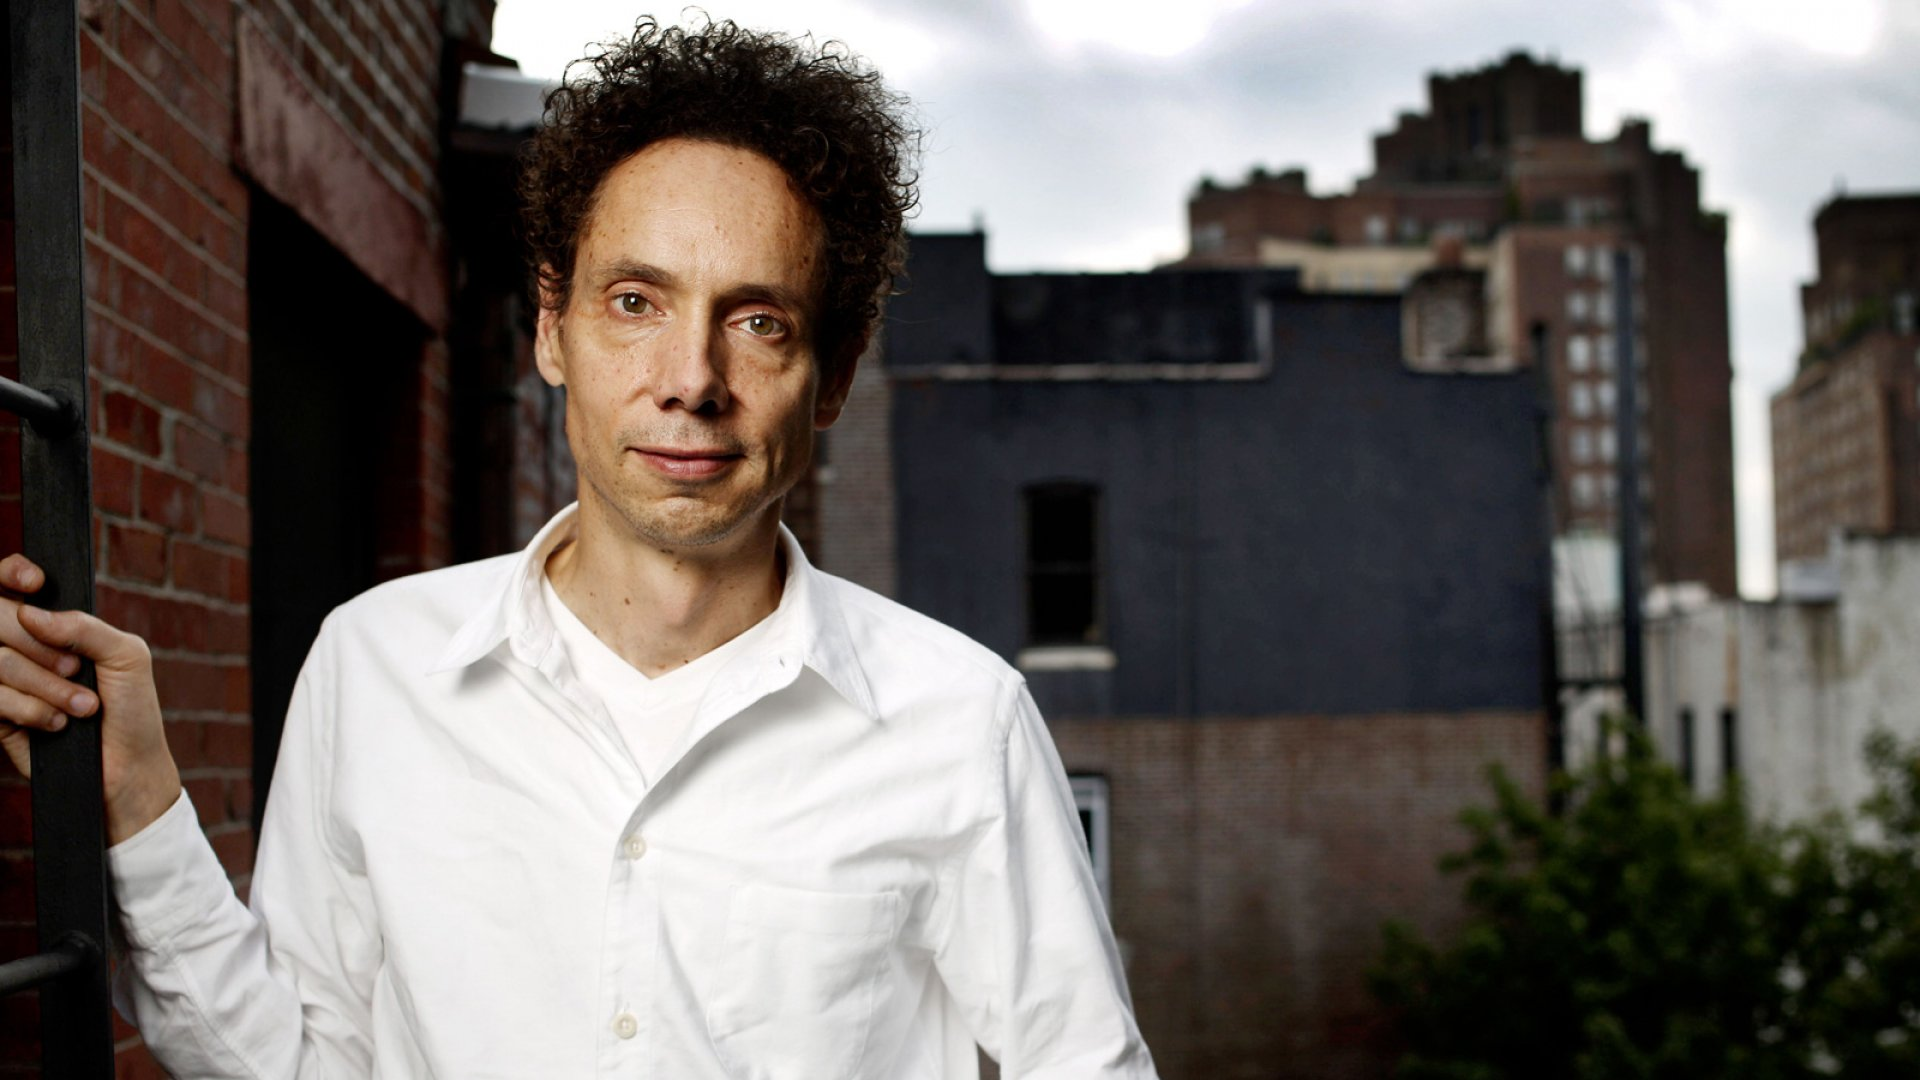 What Gladwell's 10,000 Hour Rule Means For Selling Your Business